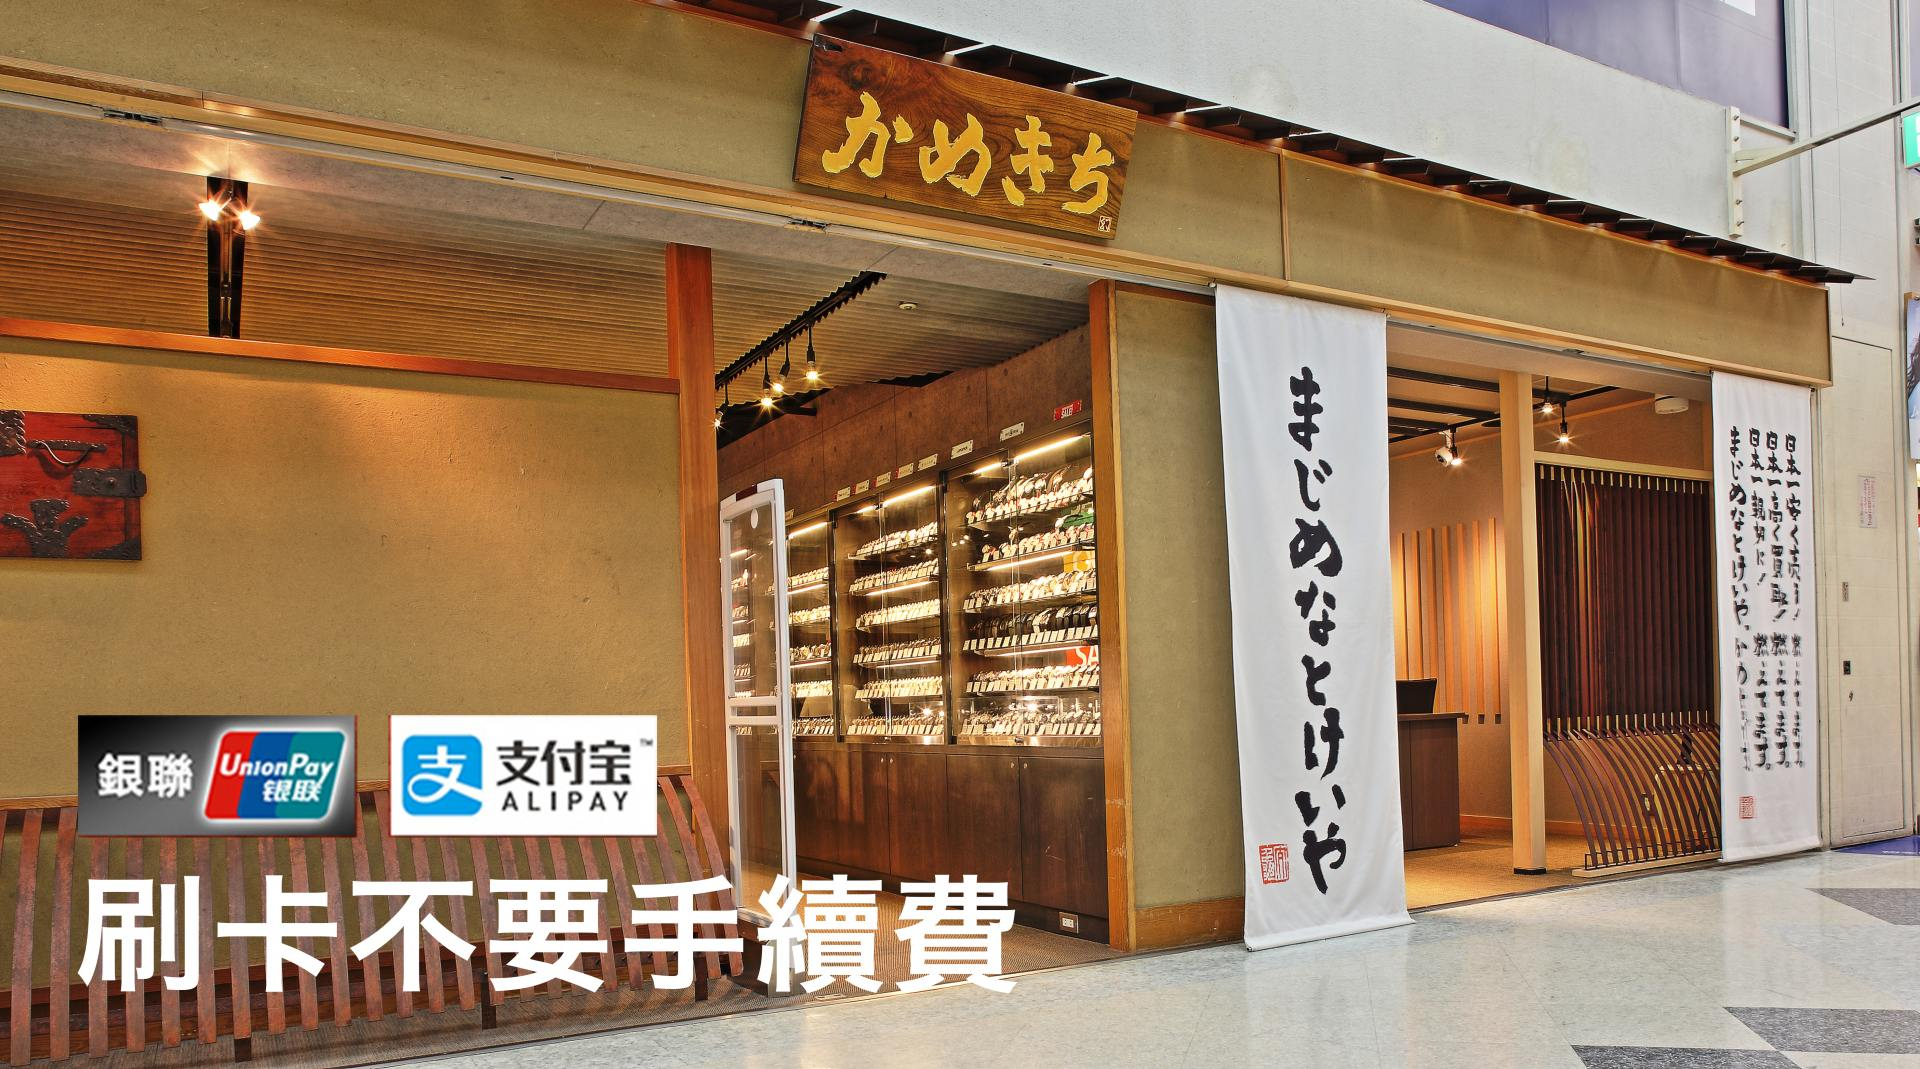 Union Pay and AliPay processing fees are covered by the shop!